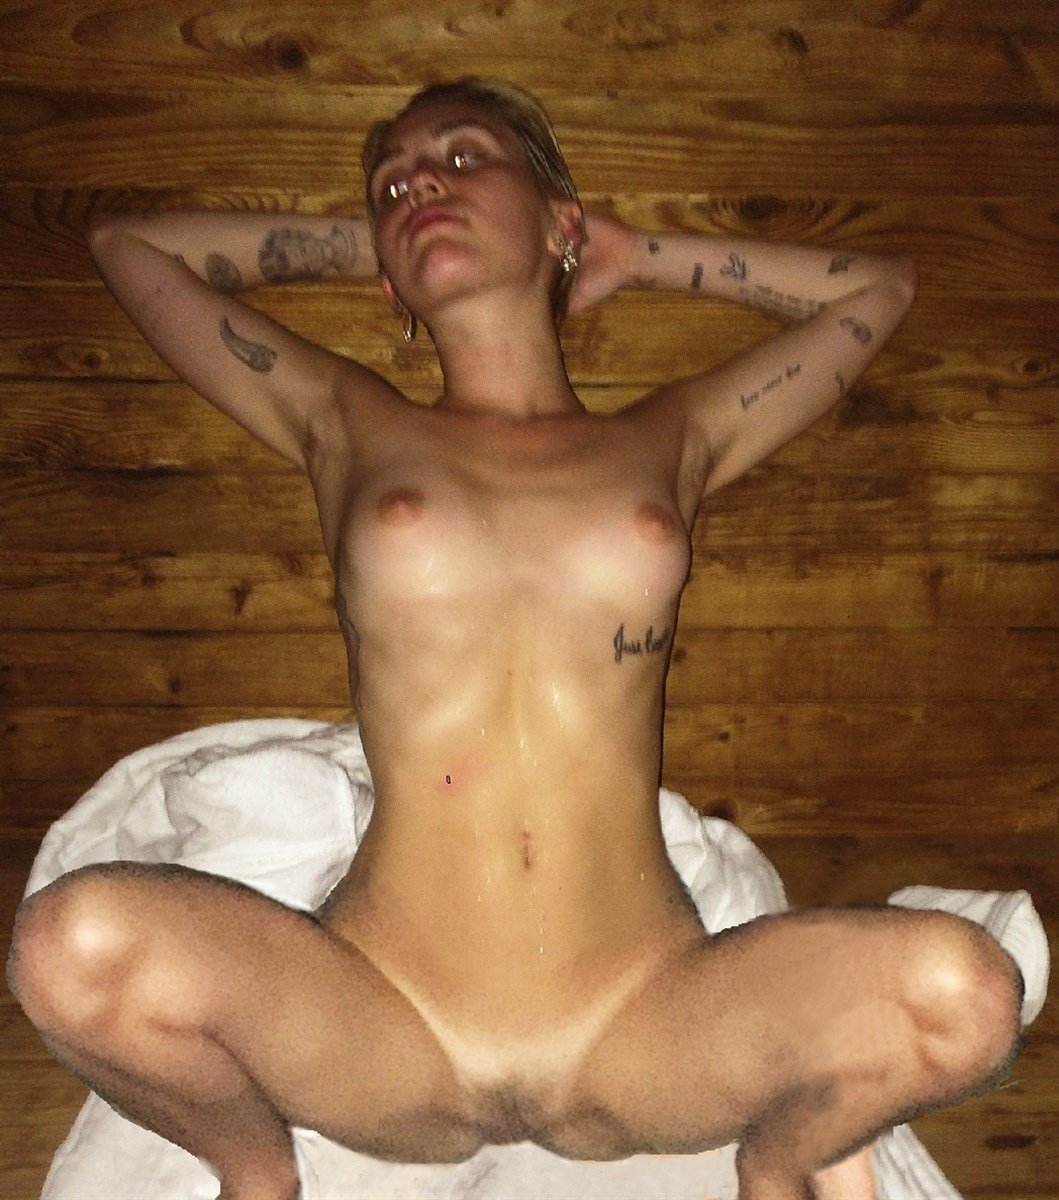 Miley Cyrus Graphic Nude Photos Leaked